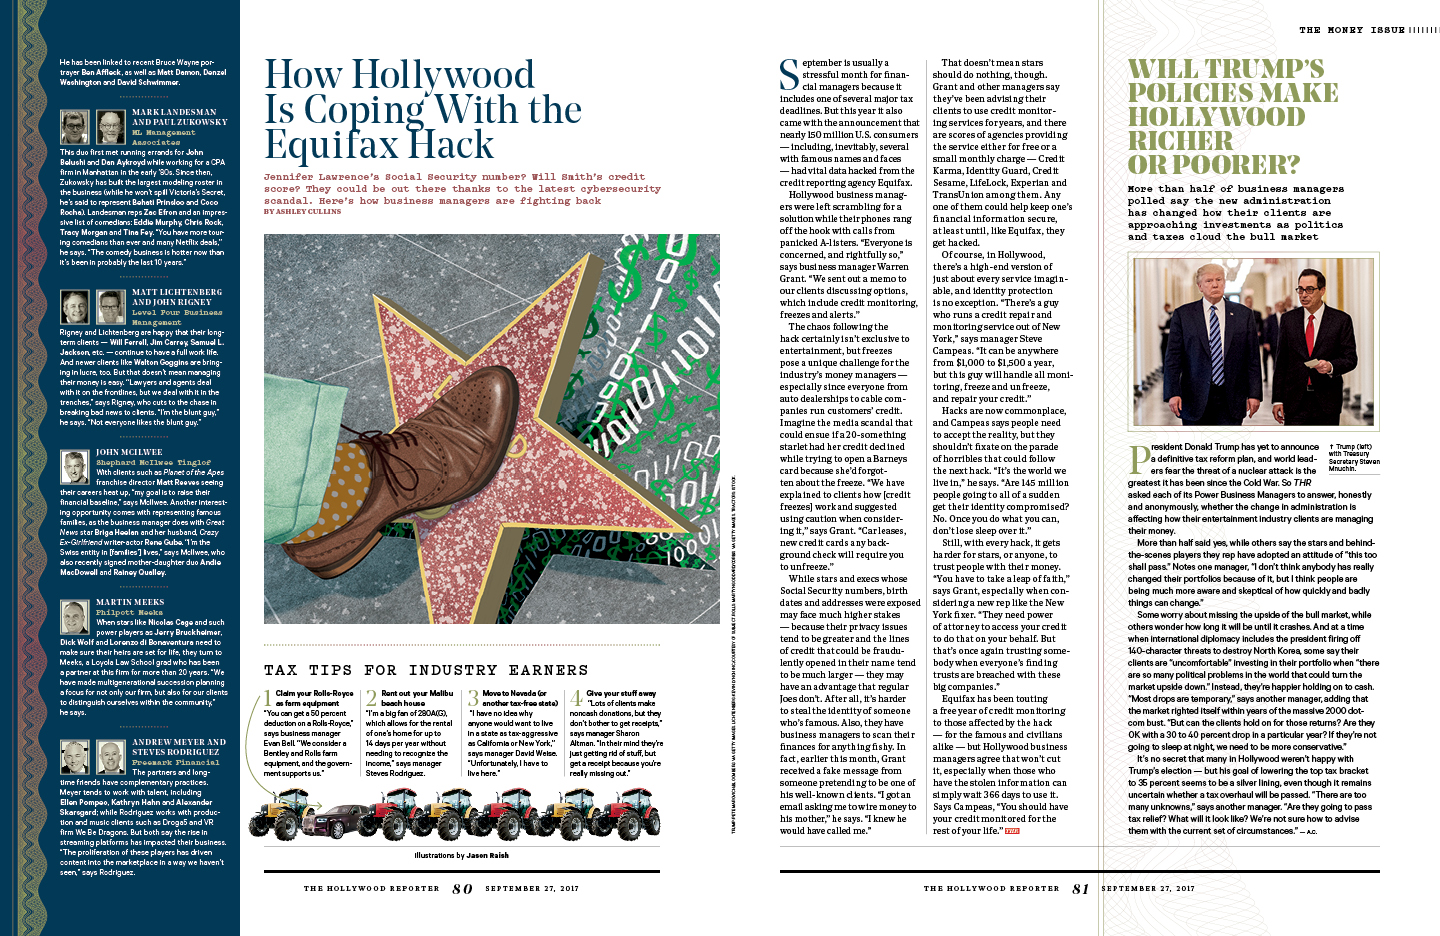 What Hollywood Earns Now / The Hollywood Reporter / 9.27.17 / kelsey stefanson / art direction + graphic design / yeskelsey.com